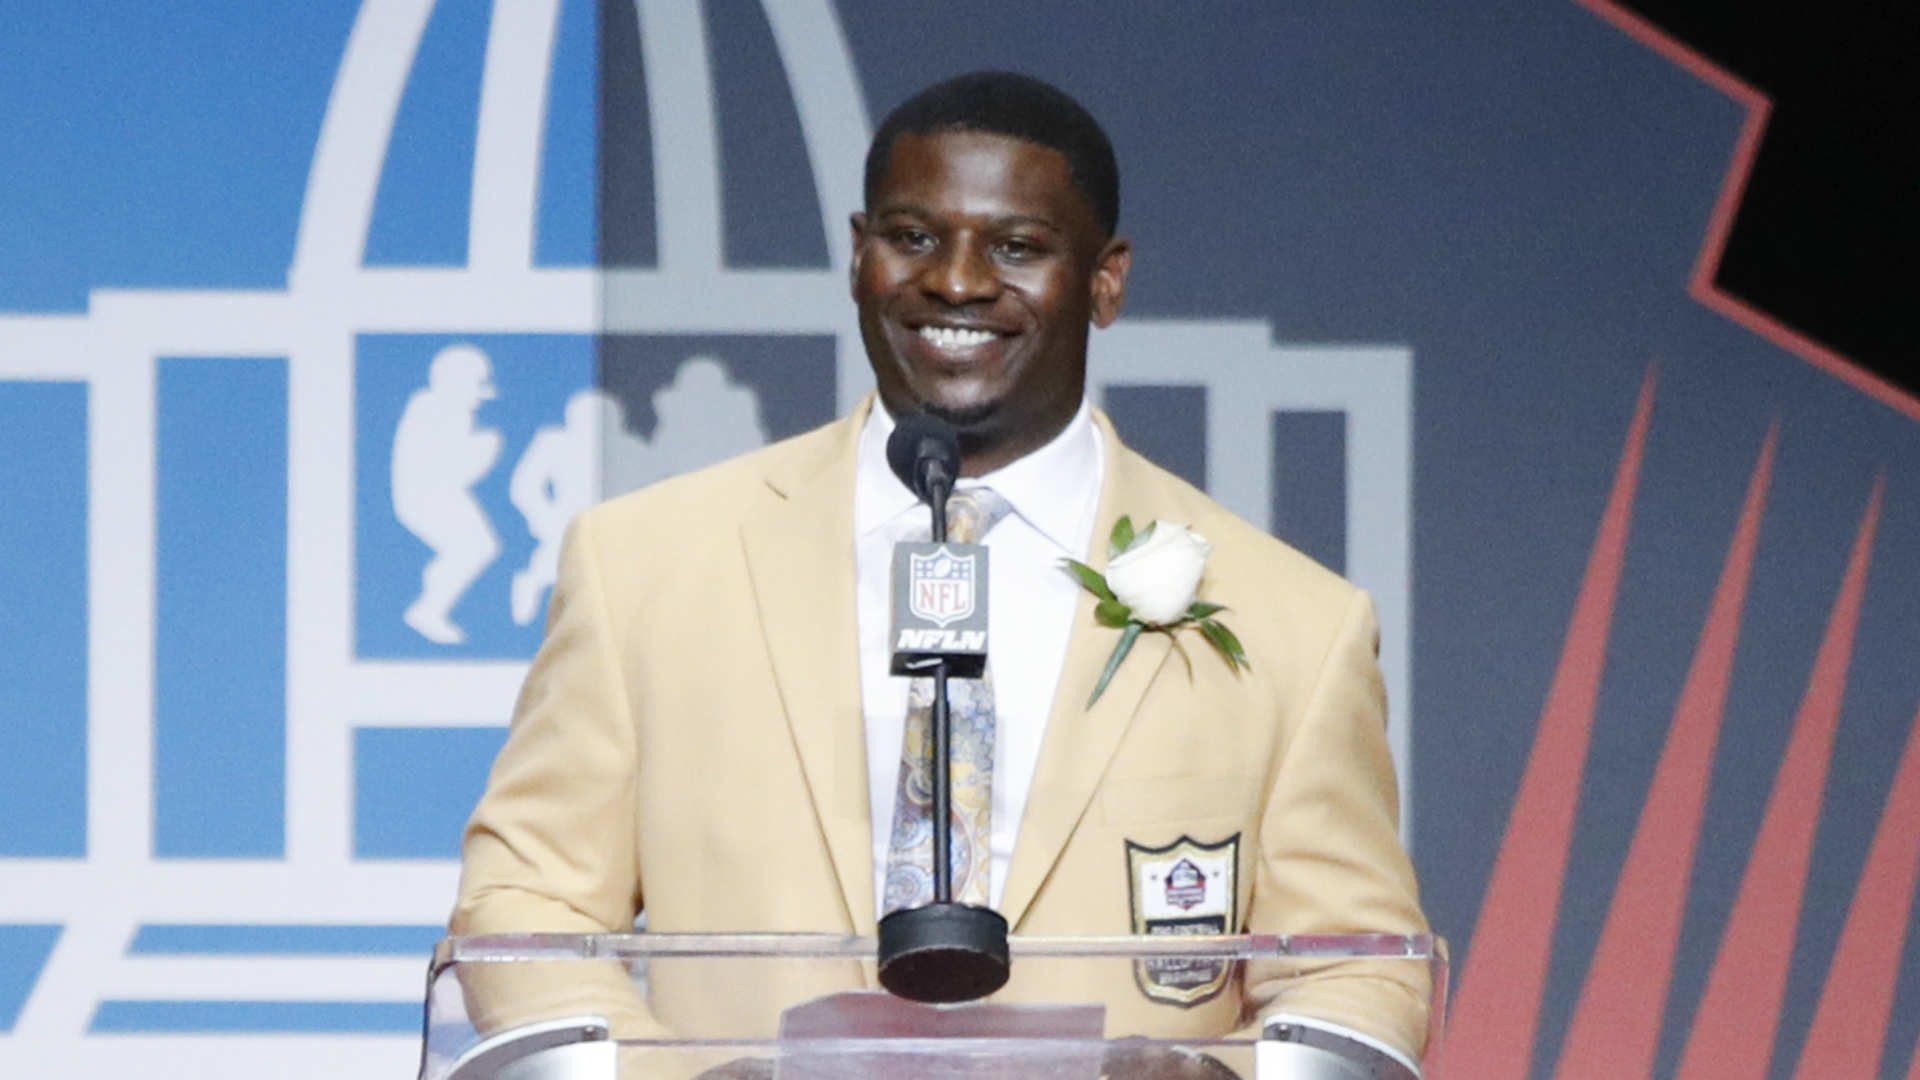 LaDainian Tomlinson issues passionate message of unity   NFL   Sporting News